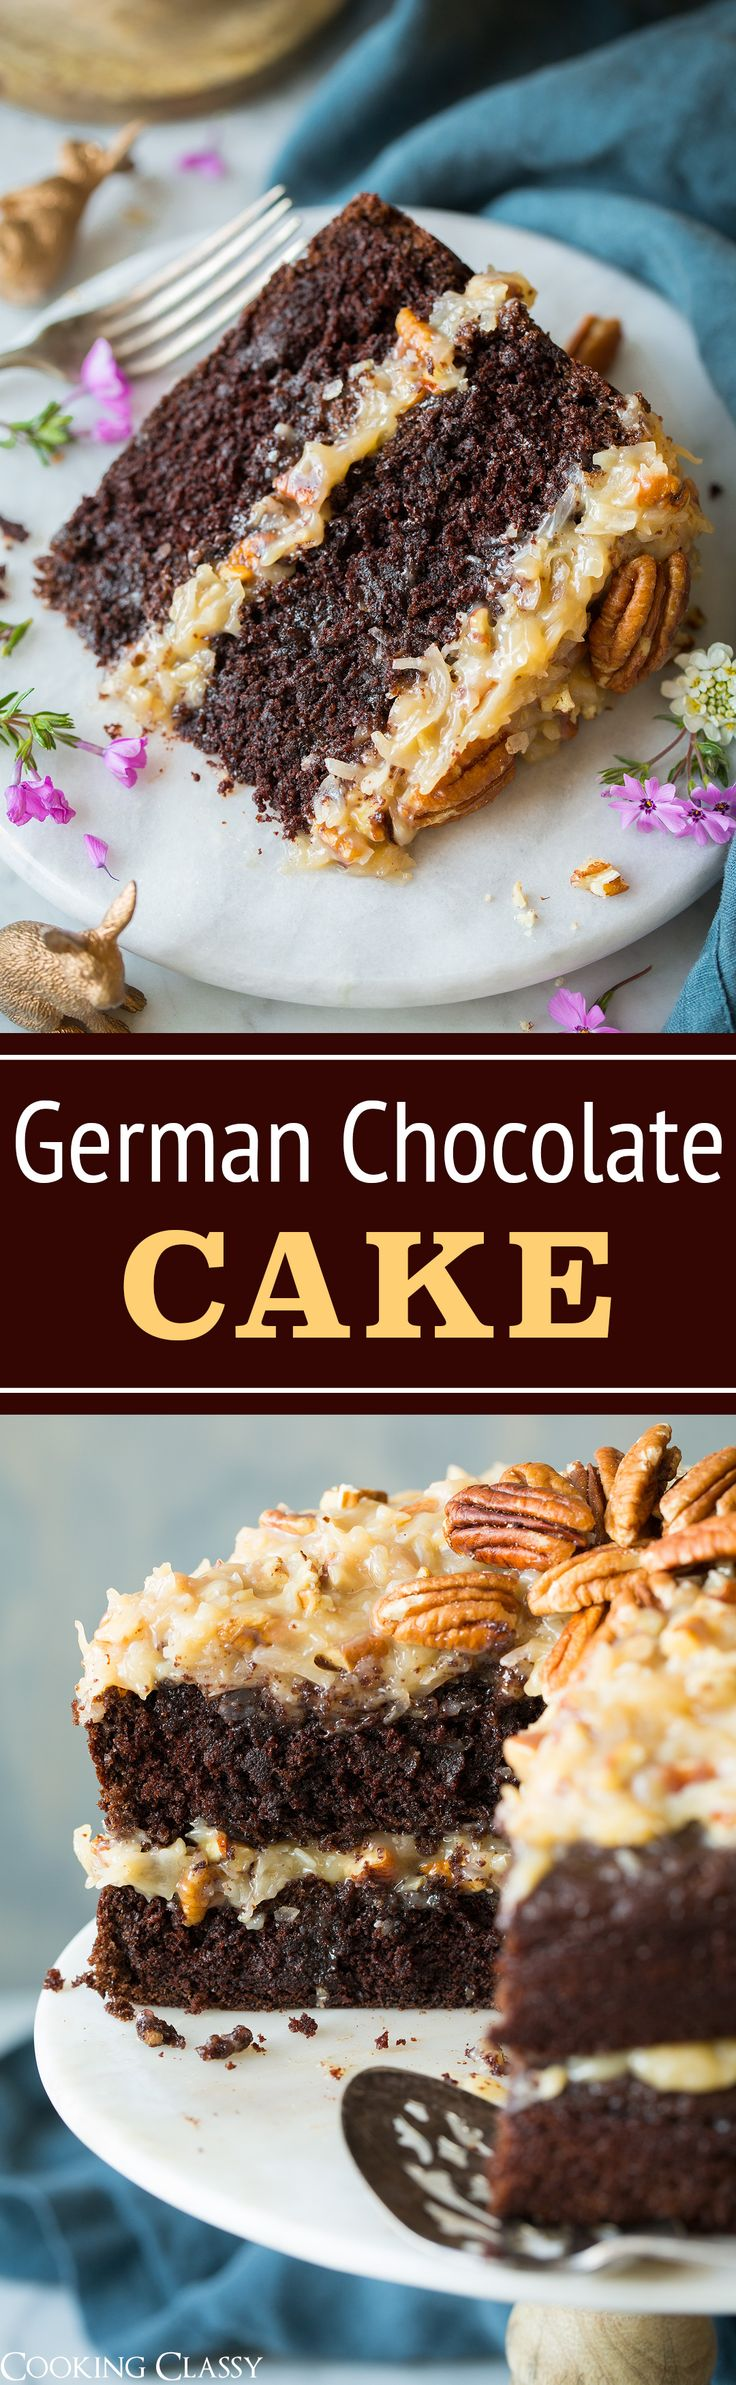 Best 20+ German chocolate pies ideas on Pinterest | Chocolate in ...